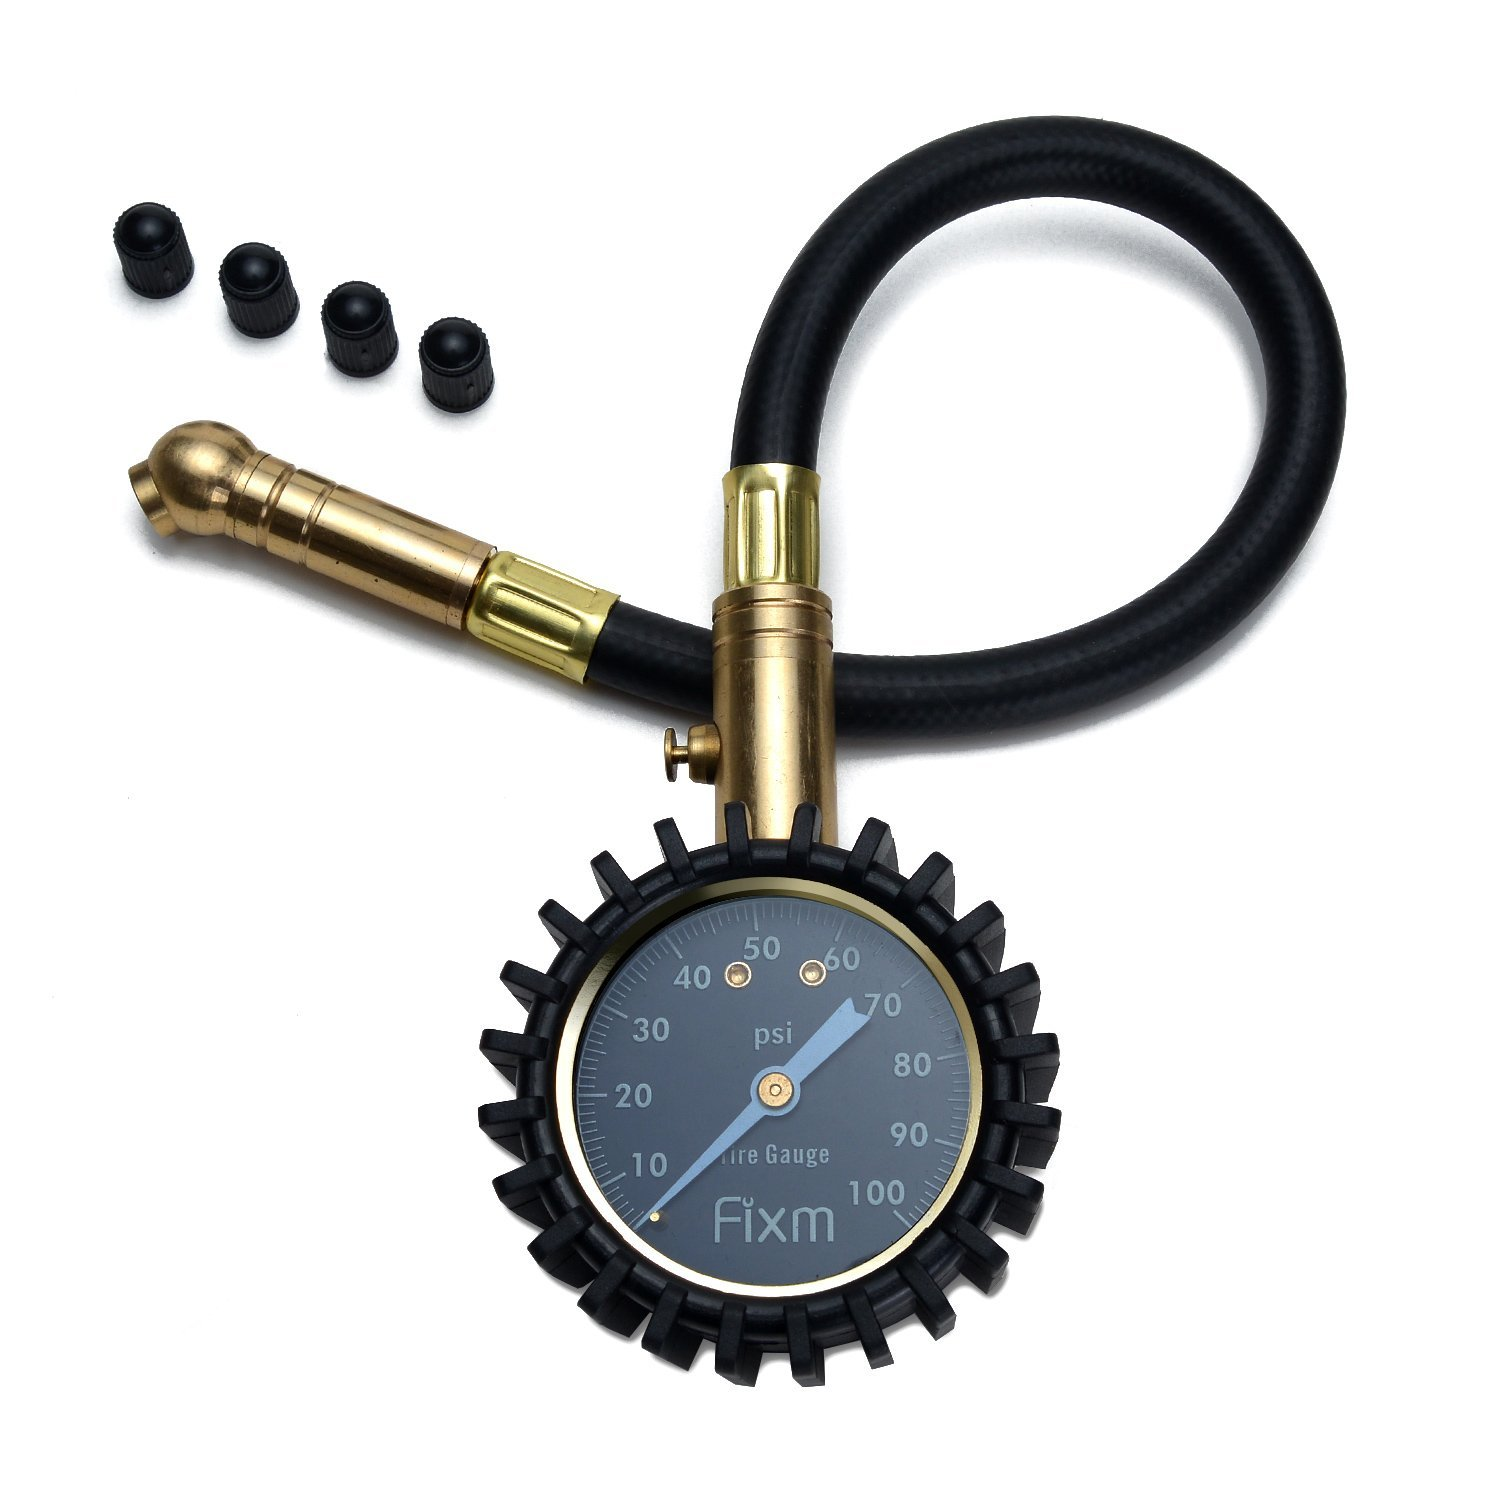 FIXm 100 PSI Precise Car Tire Pressure Gauge(With Tube) with Valve Caps Accurate Heavy Duty Dial, Excellent for Cars, Trucks, Bicycles and Motorcycles, RV, SUV and ATV